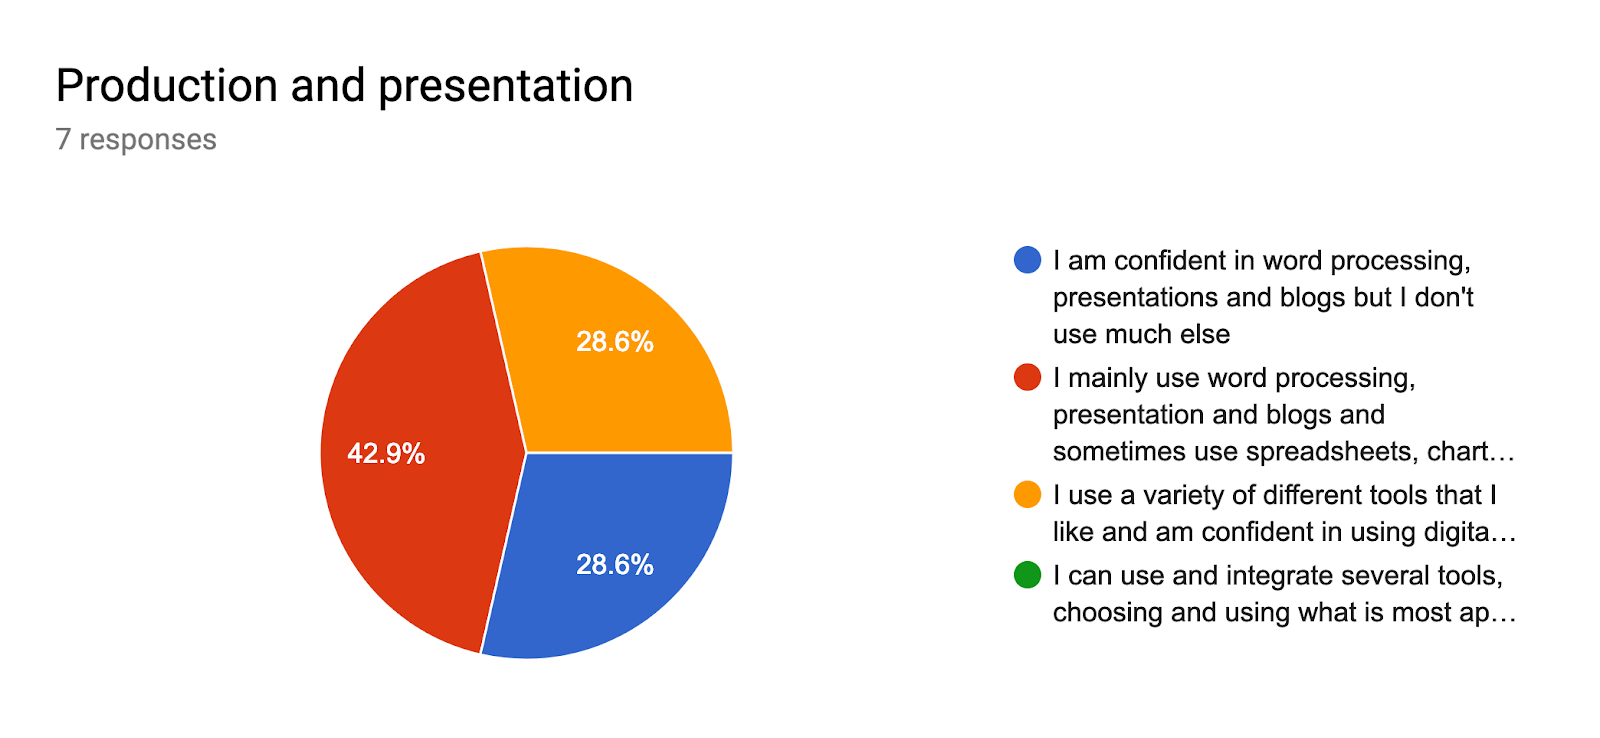 Forms response chart. Question title: Production and presentation. Number of responses: 7 responses.